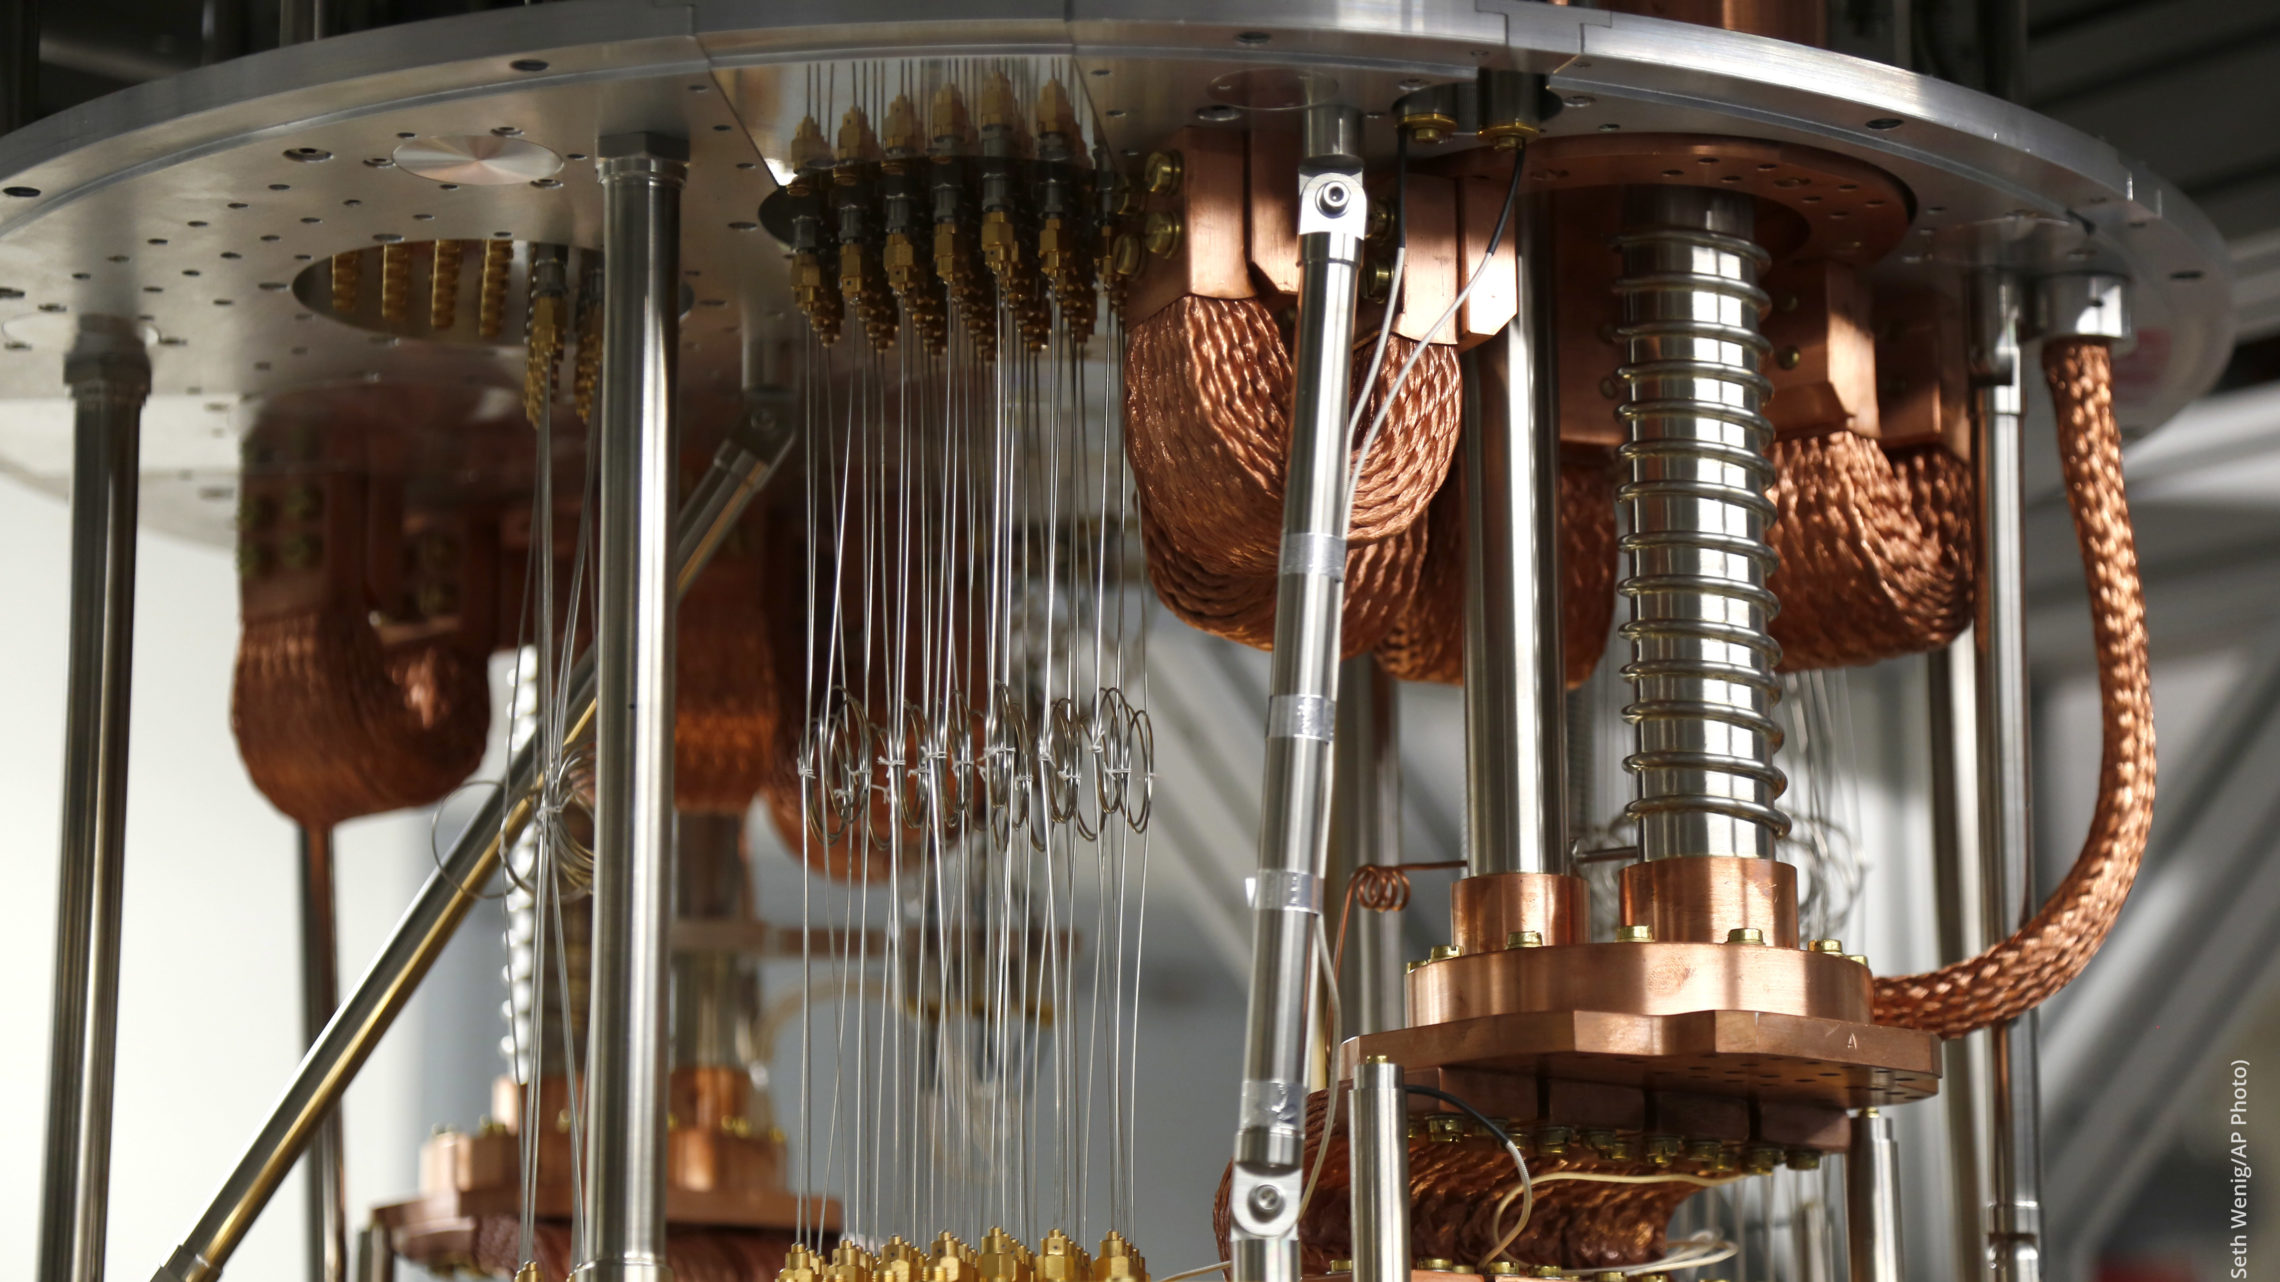 The inner workings of a quantum computer, which require extreme conditions to keep qubits in superposition.